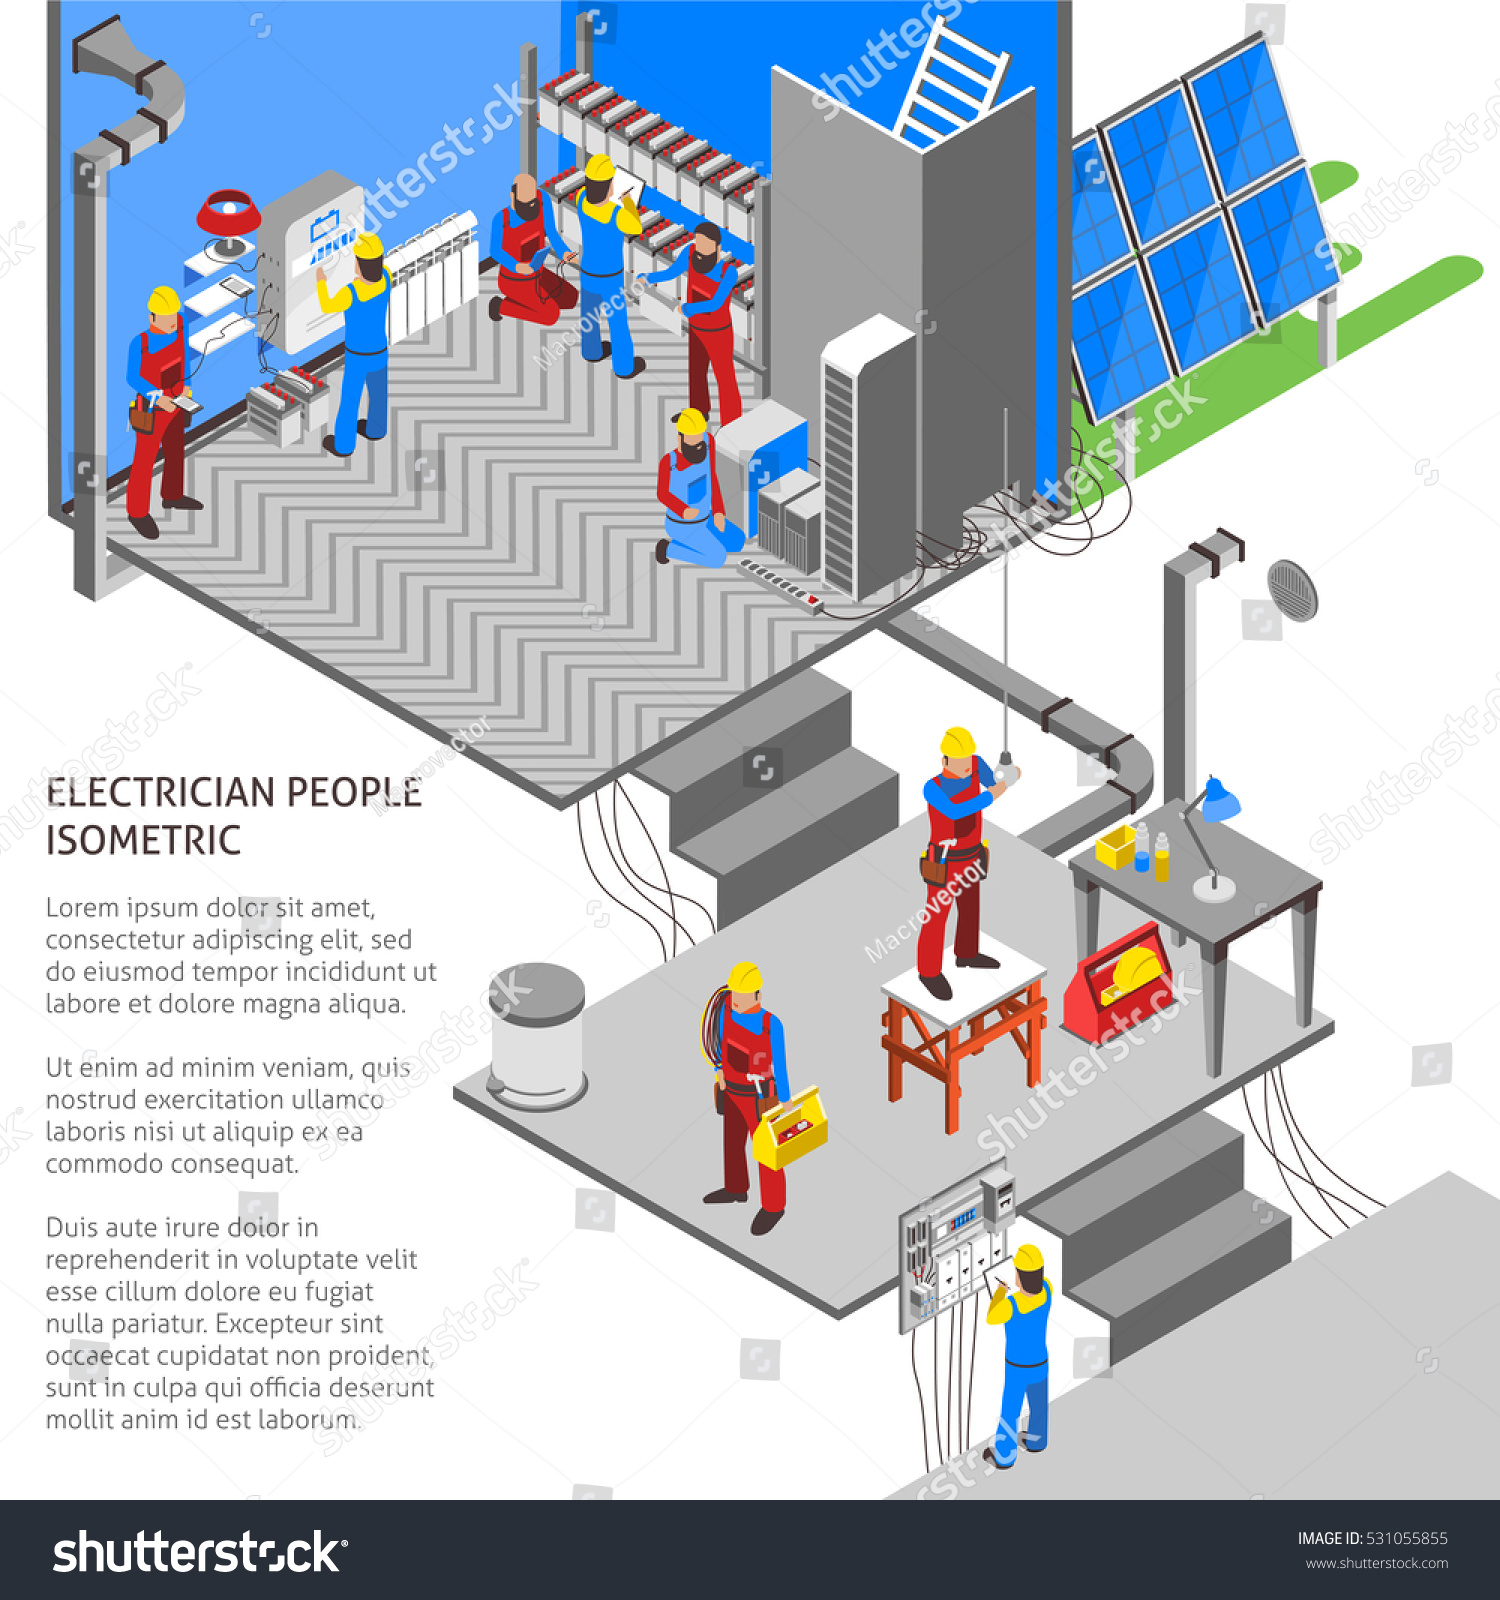 Electrician Isometric Composition Technology Power Symbols Stock ...